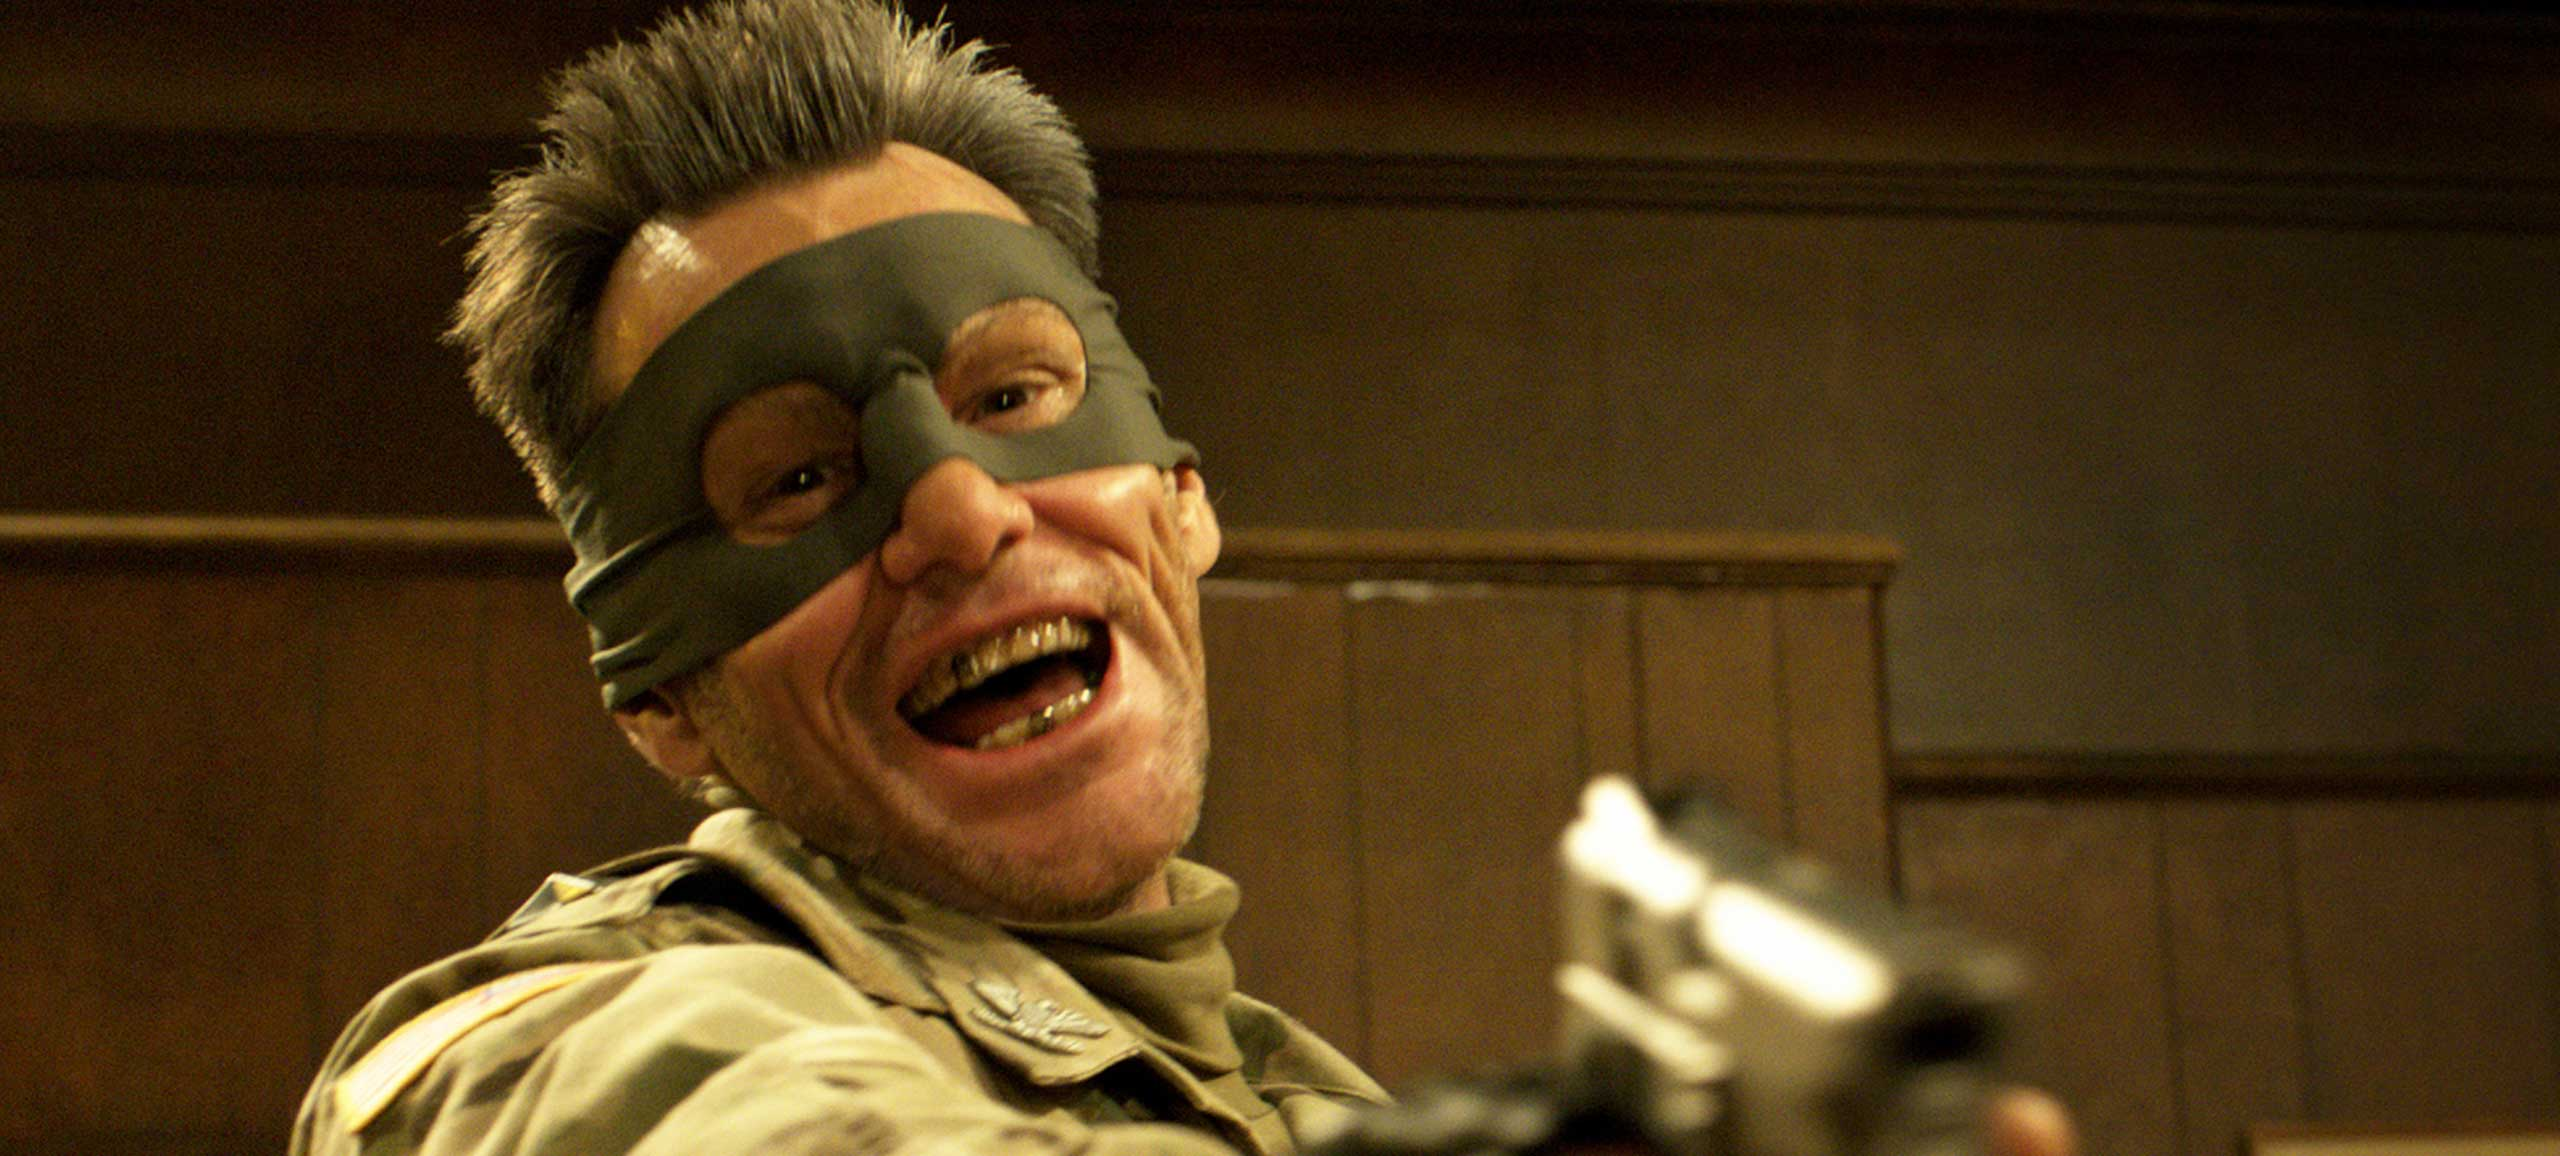 <strong>Kick-Ass 2</strong>                                    As Colonel Stars and Stripes, Carrey led the band of superheroes called Justice Forever.